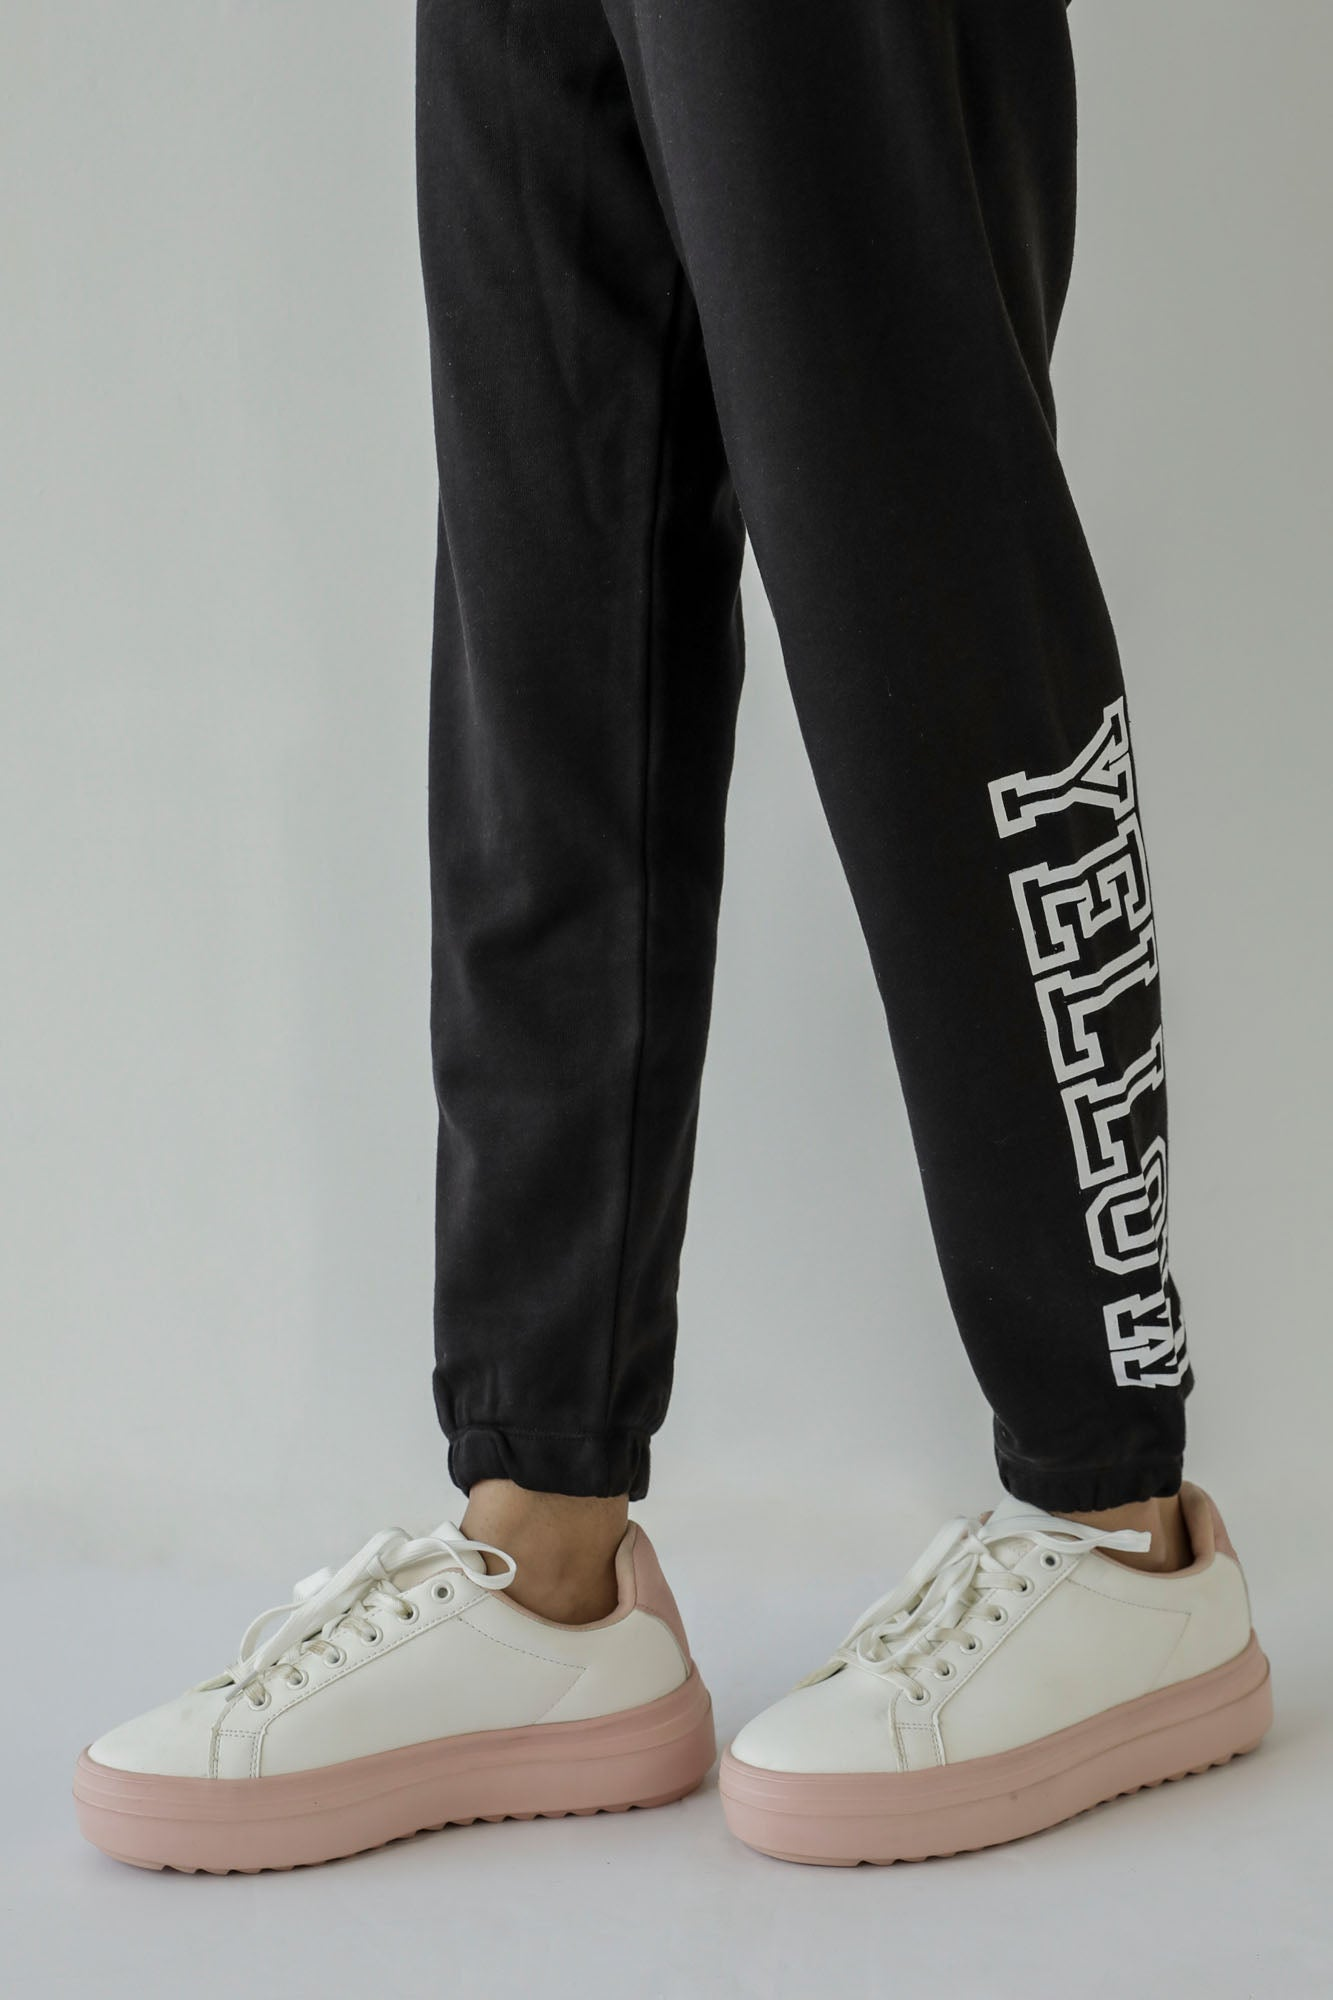 KNIT TERRY JOGGING TROUSER (WBW401786)